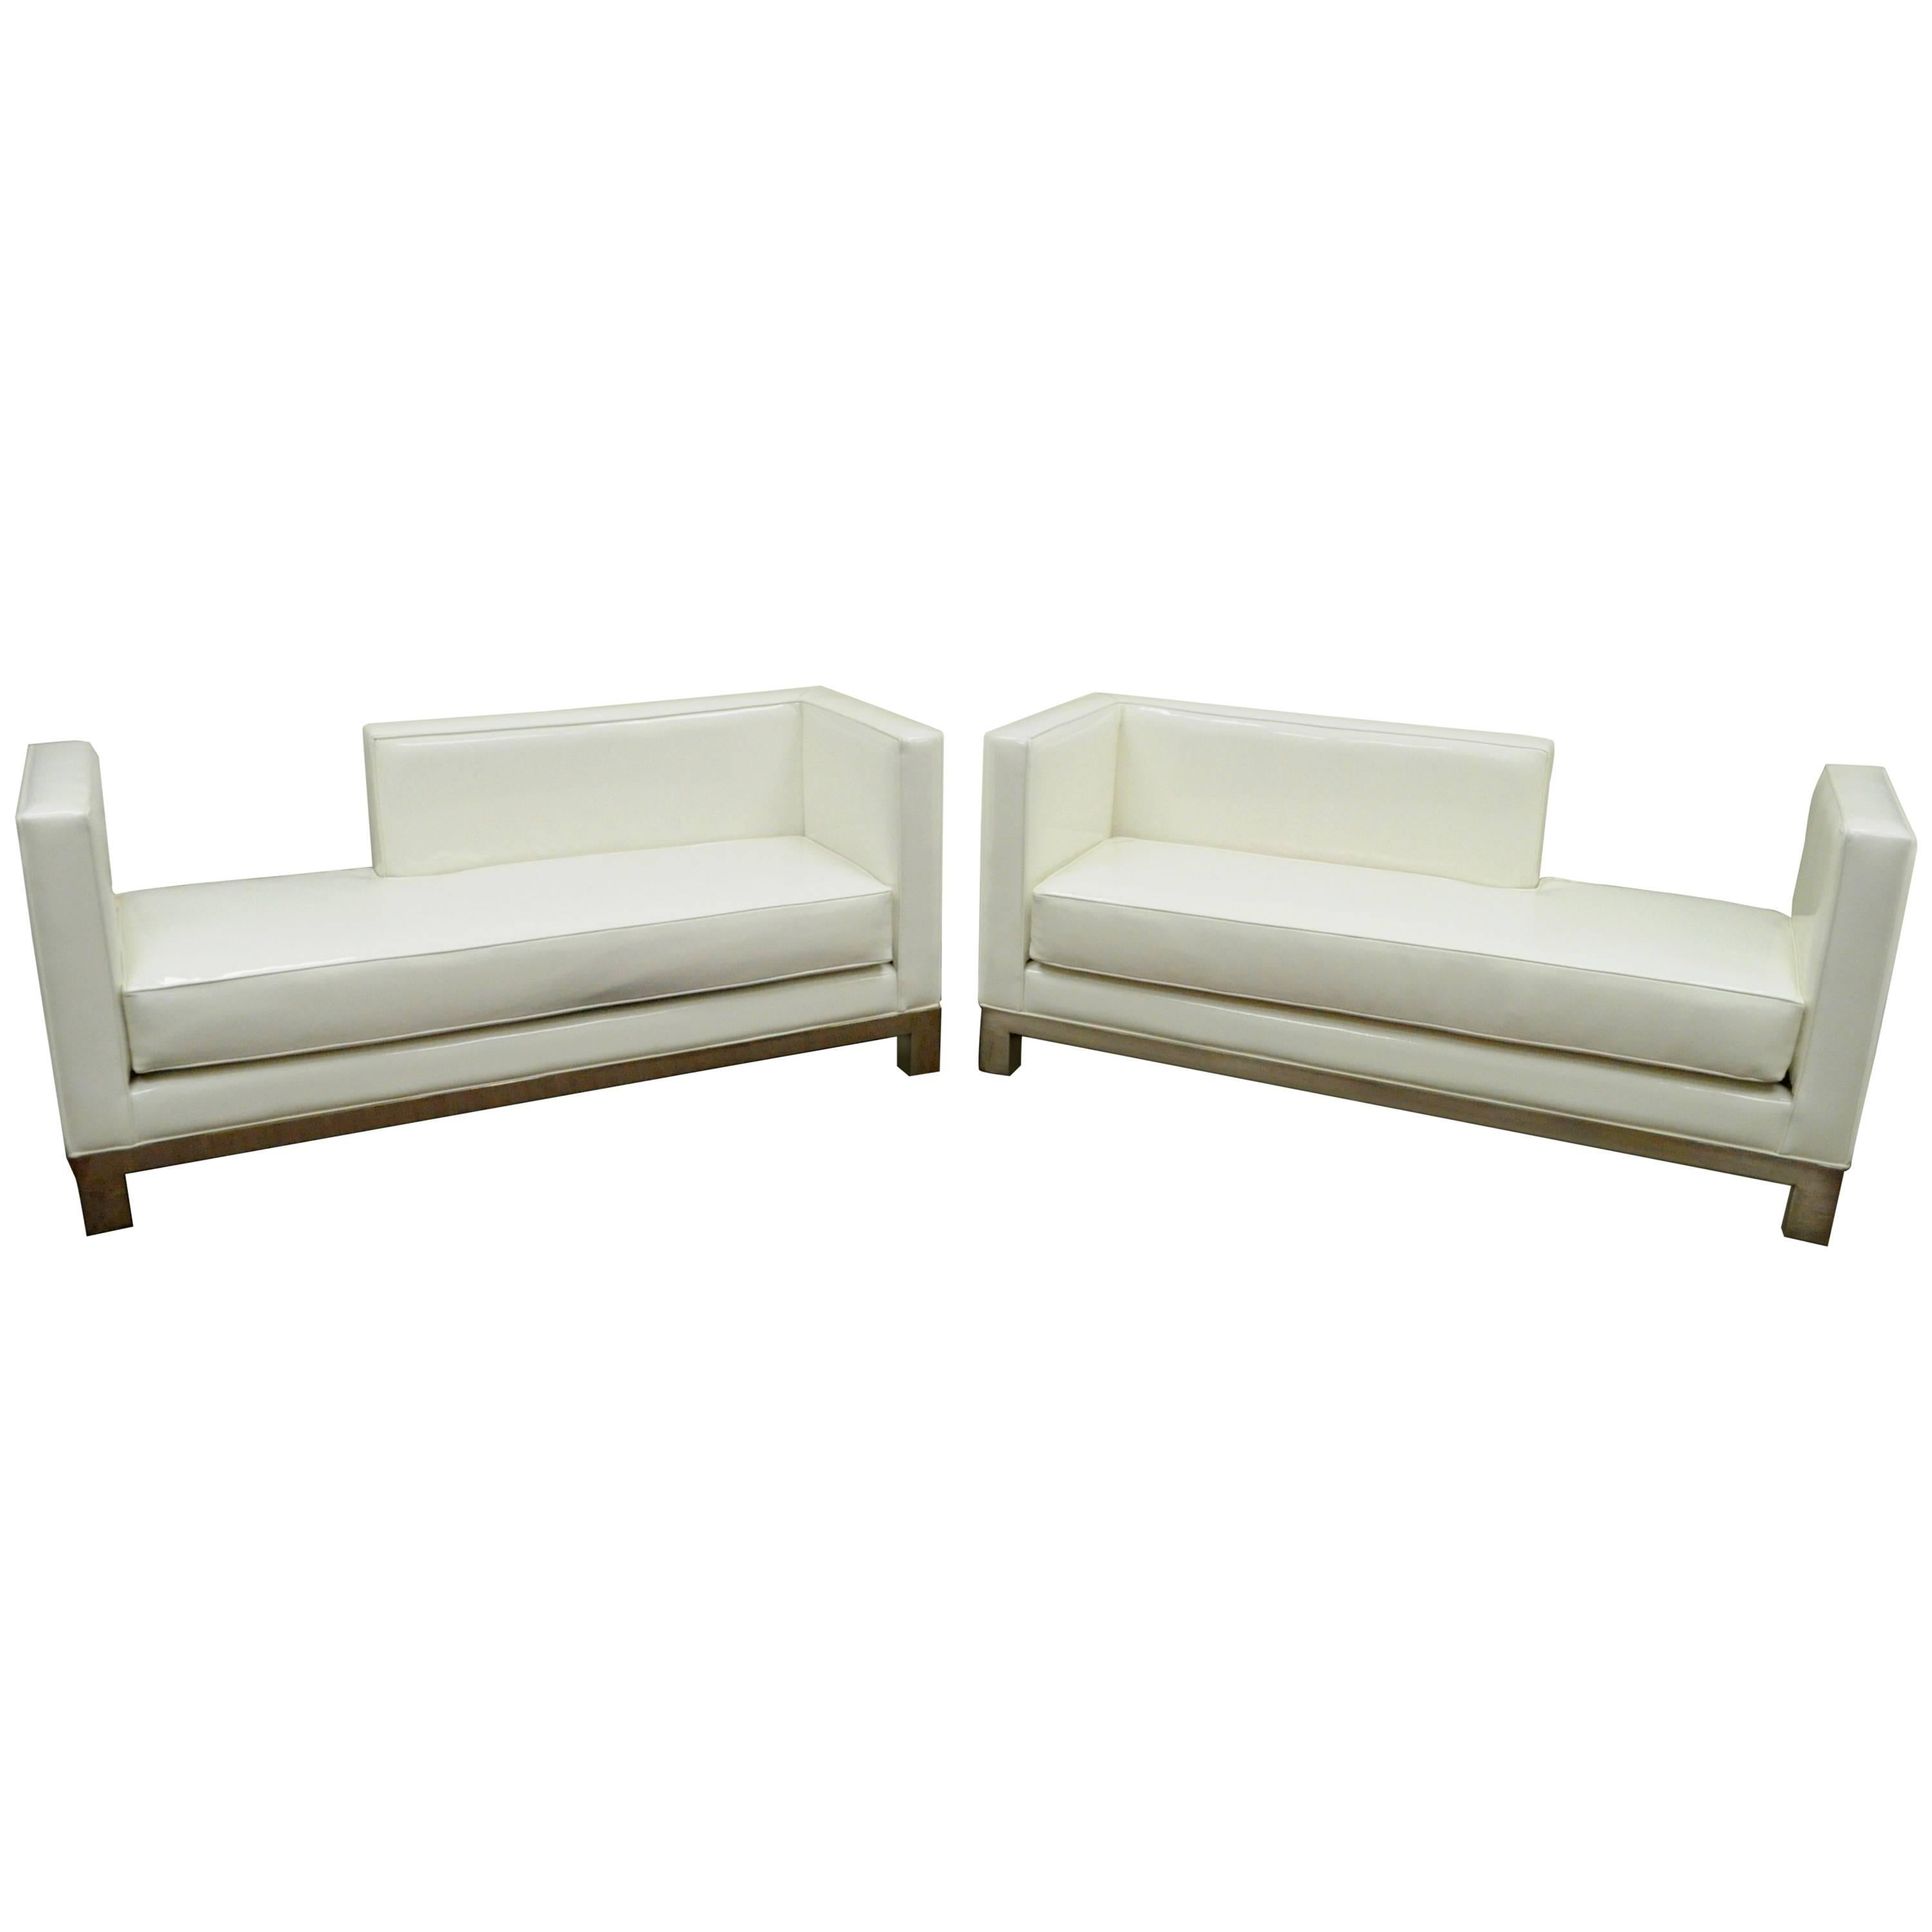 Pair of J.A. Casillas Modern White Vinyl Chrome Brushed Metal Chaise ...